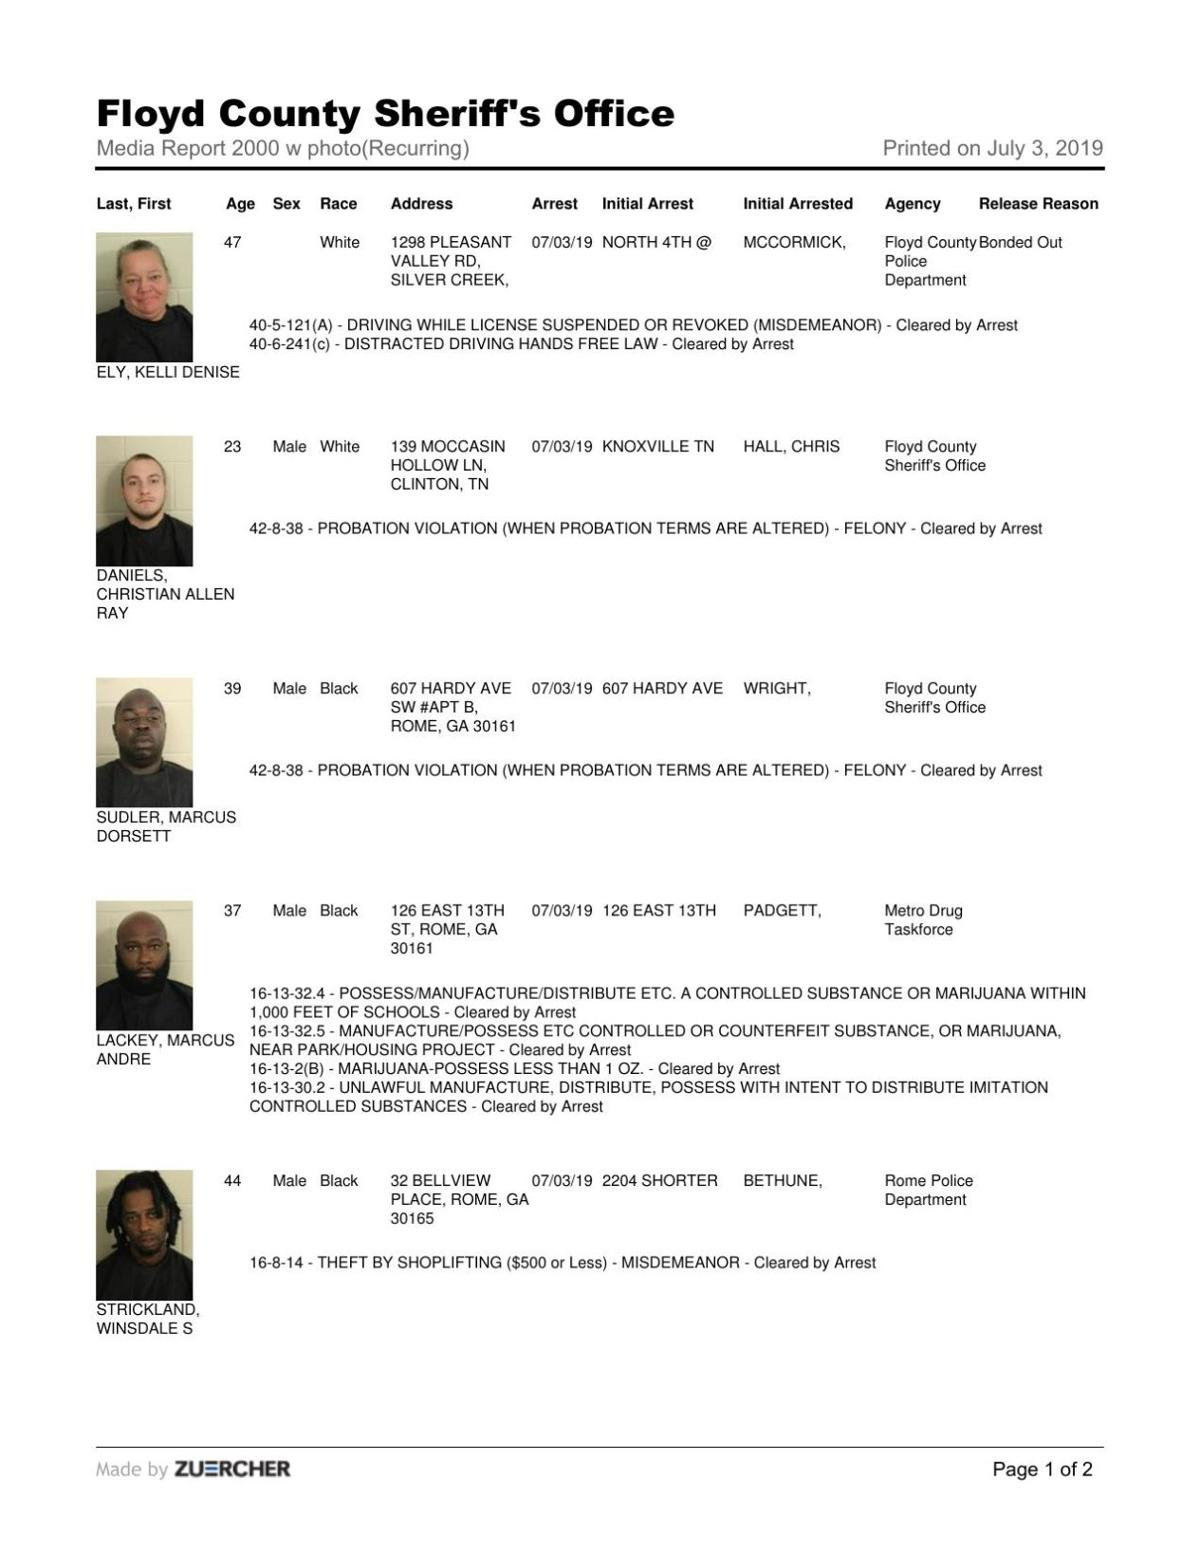 Floyd County Jail report for Wednesday, July 3